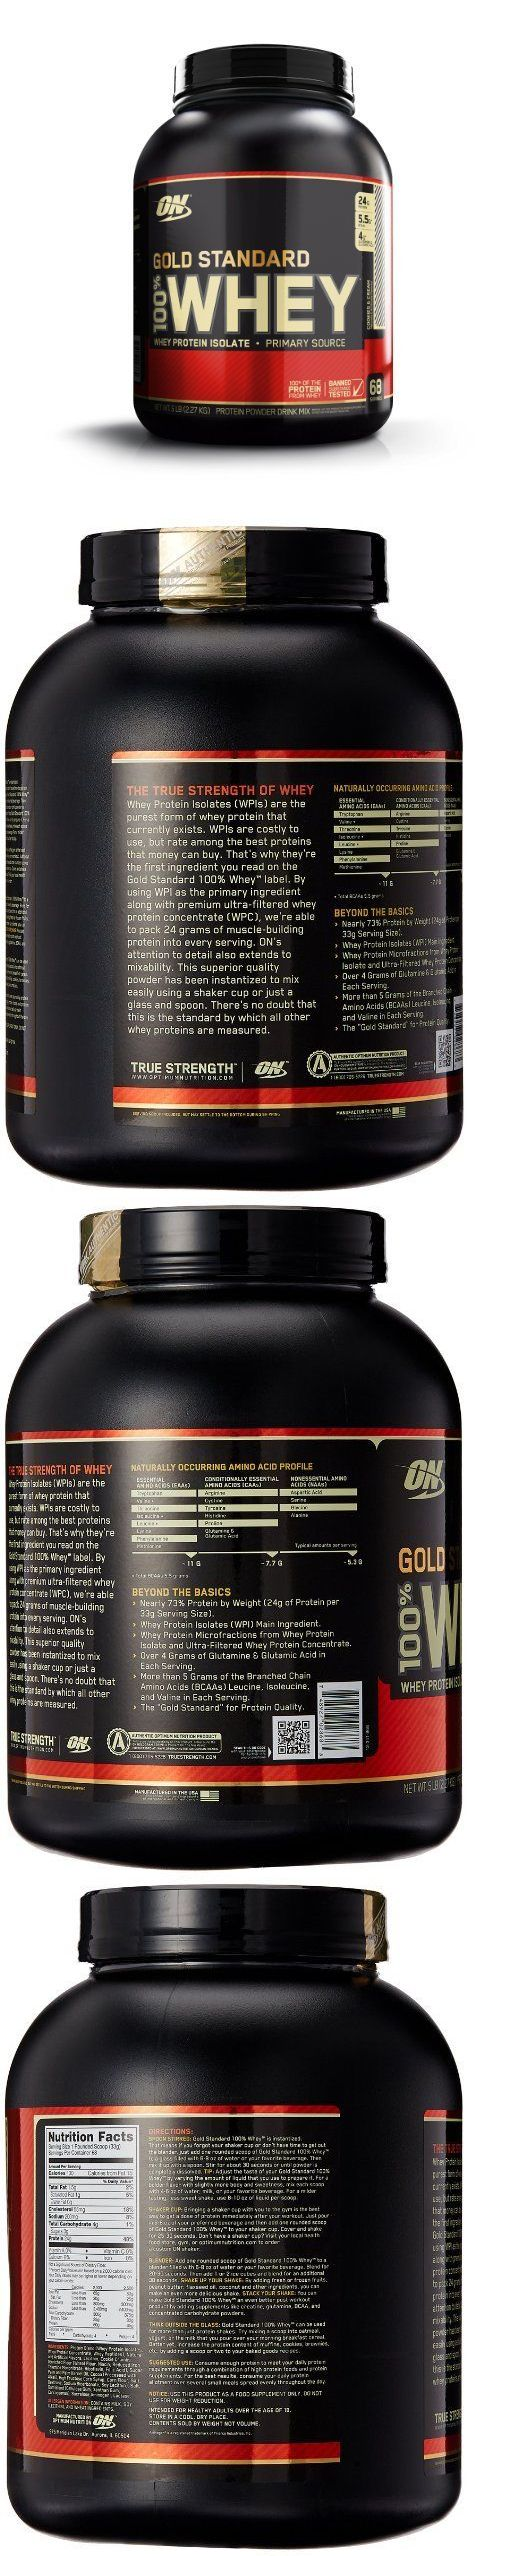 Protein Shakes and Bodybuilding: Optimum Nutrition On 100% Whey Protein Gold Standard 5 Lbs **Choose Your Flavor* -> BUY IT NOW ONLY: $62.89 on eBay!